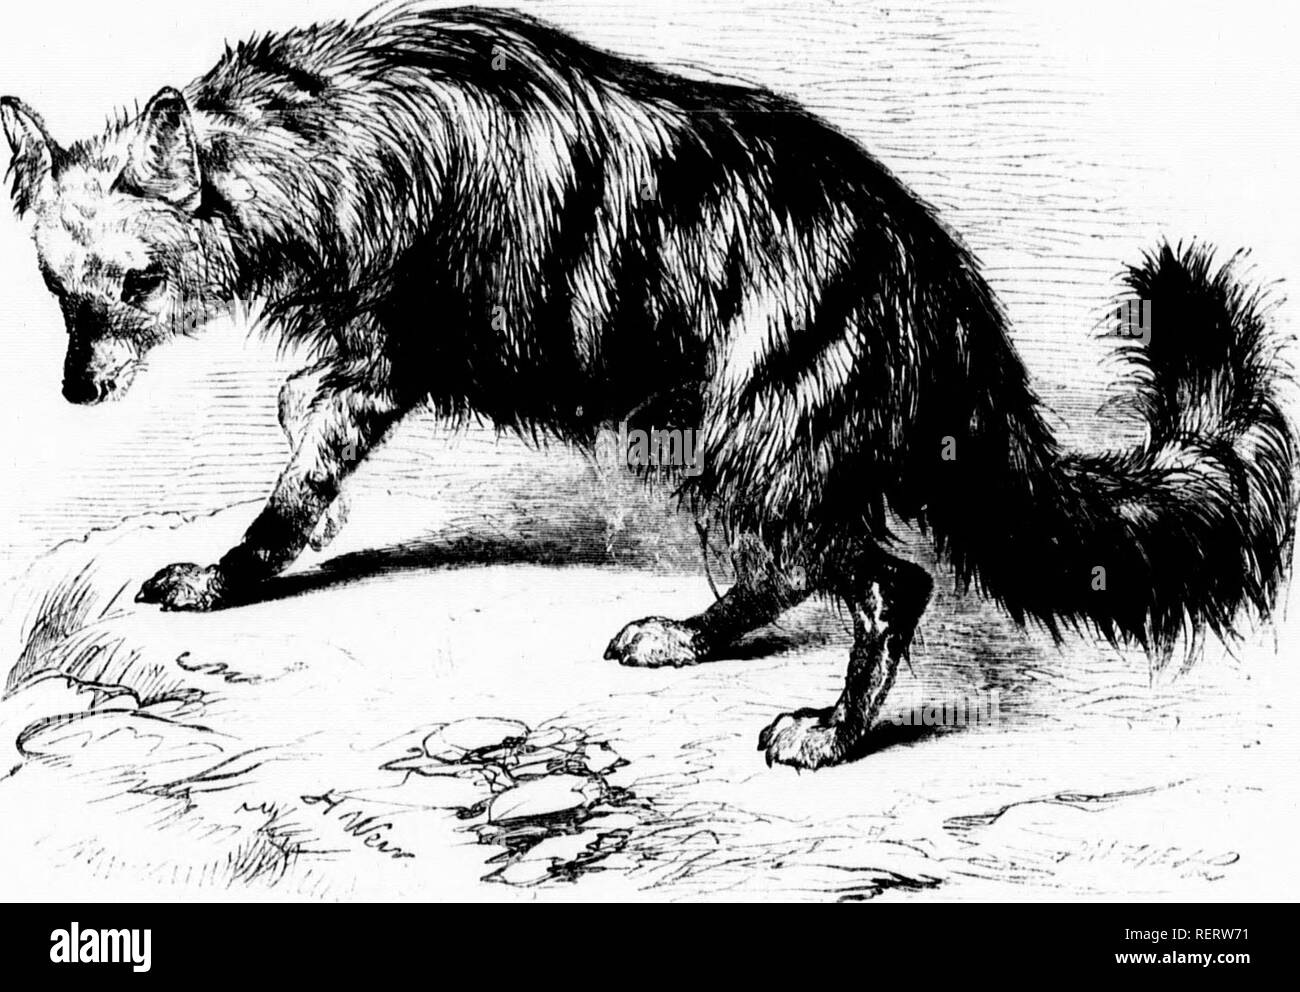 . The illustrated natural history [microform]. Mammals; Natural history; Mammifères; Sciences naturelles. iim 228 AARD WOLF. dog when it hns tlie bonutit uf similar troalinent. It has boon known to n<'( nnipany its master as familiarly as any dog, and to recognise him with airs of joy after a lengthened absence. The potency wluch some persons exert over iinimal natnres is most remarkable. It may be that such ]HTSons pour mneli love n]ion all things, and therefore upon the animals with which they come in contact. So love, creating love,—which is the highest gift of God, and the sum of his d - Stock Image